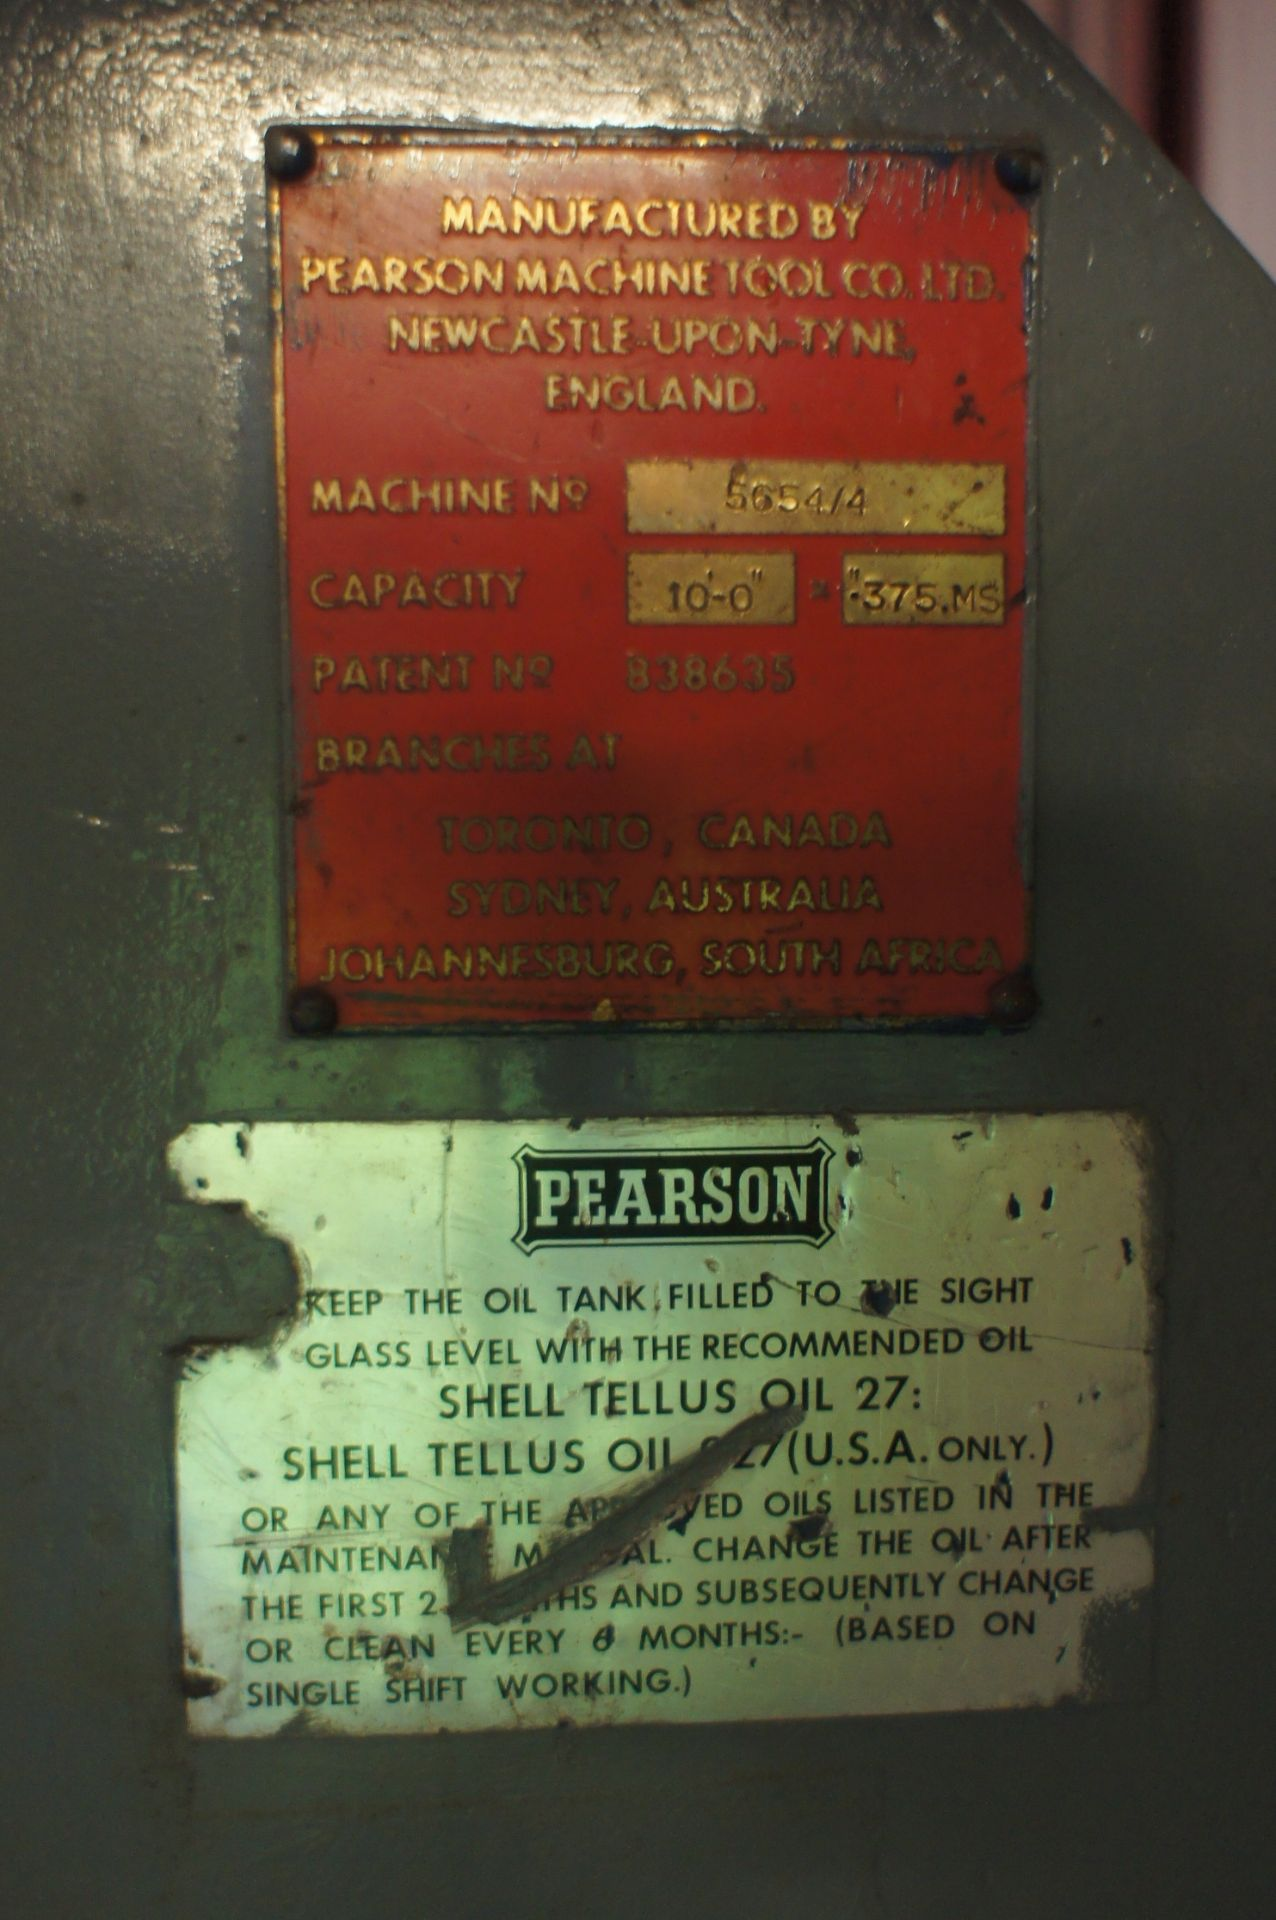 Pearson Hydraulic Guillotine, 3500mm x 10mm, 415v - Image 5 of 6